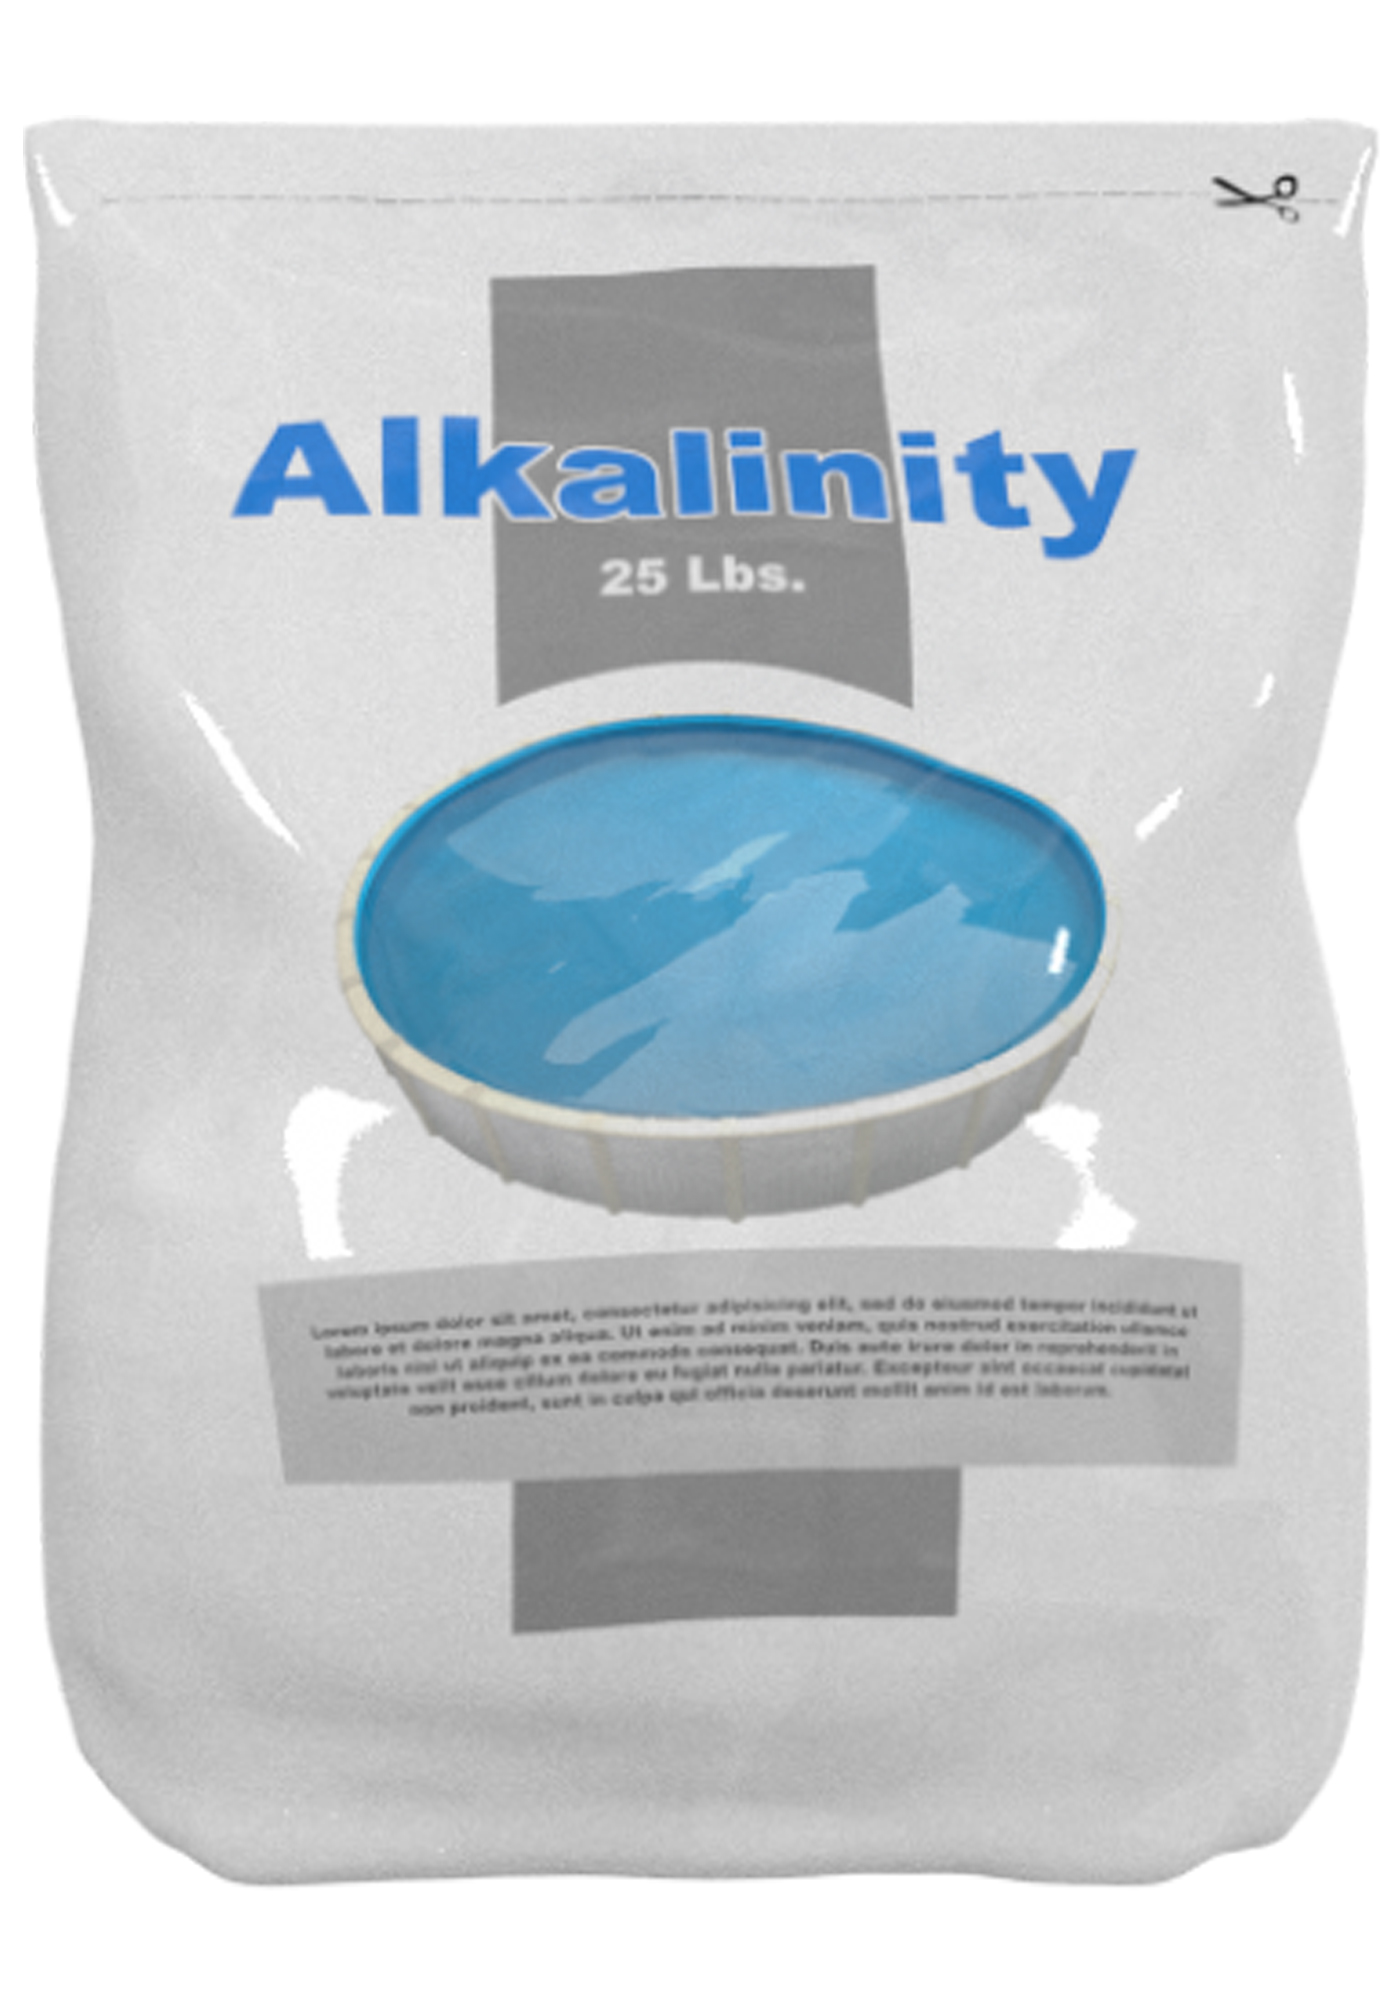 25 lbs swimming pool total alkalinity up increaser plus sodium bicarbonate ebay Swimming pool high alkalinity